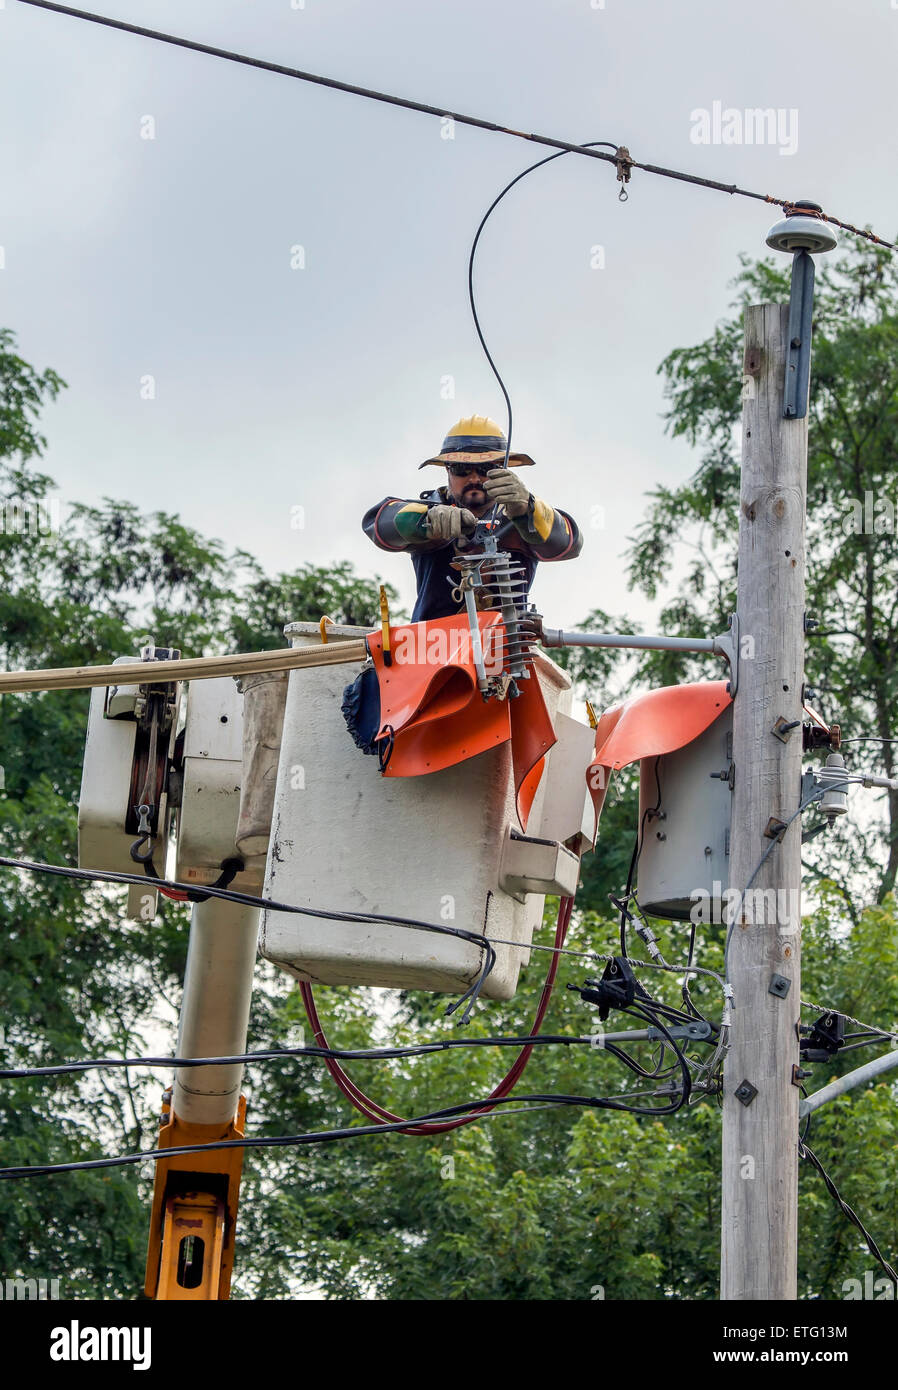 A telcom lineman fixes overhead power lines using a cherry picker, elevated work platform. - Stock Image